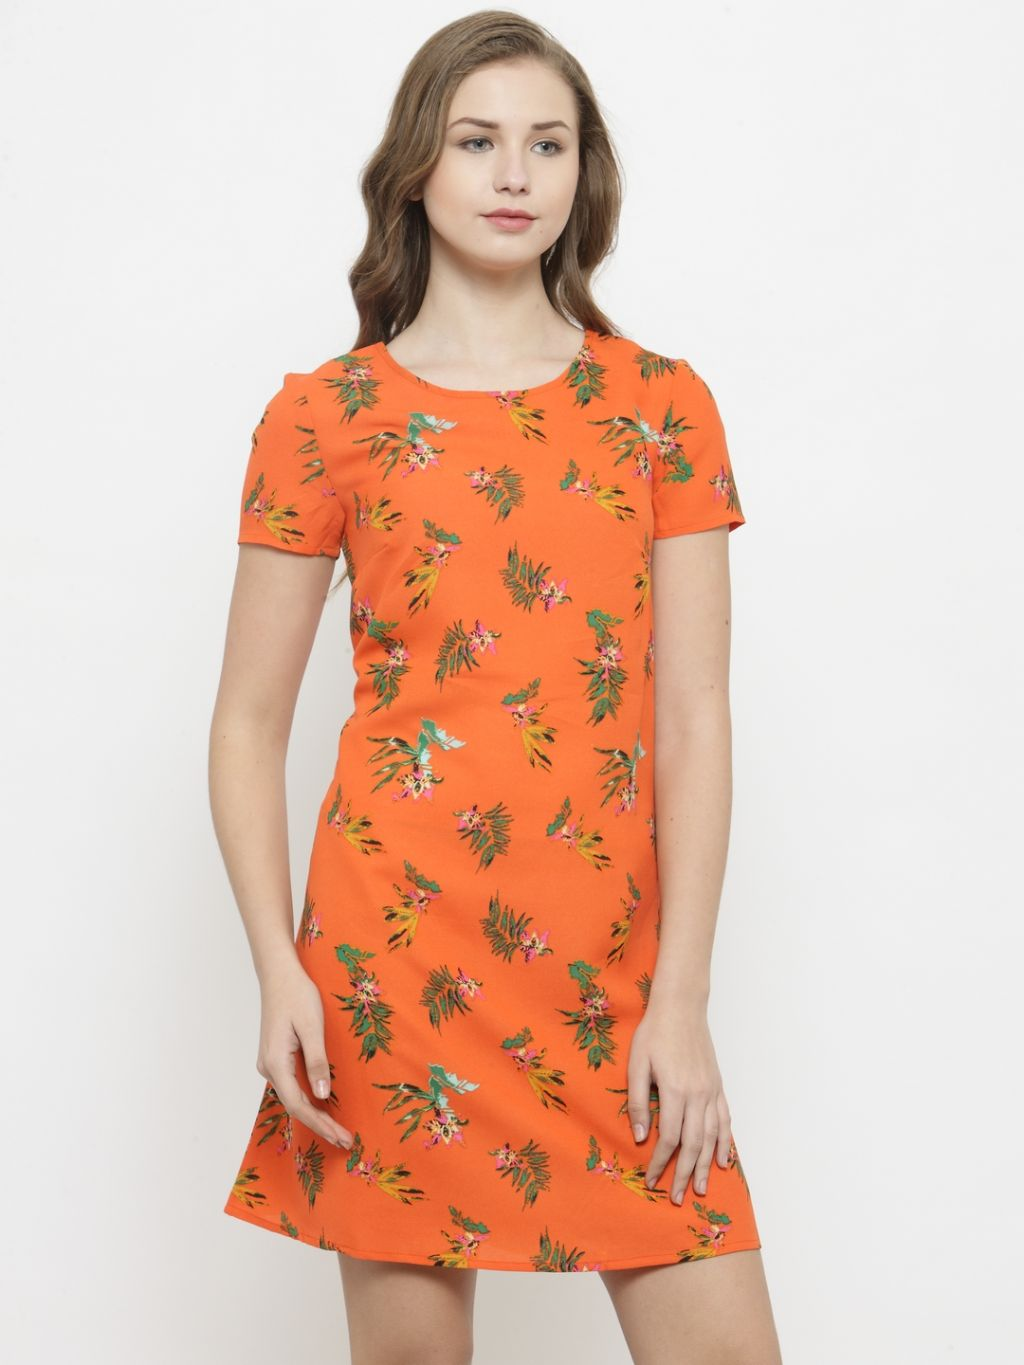 Querida Orange Leaf & Flower Print Dress